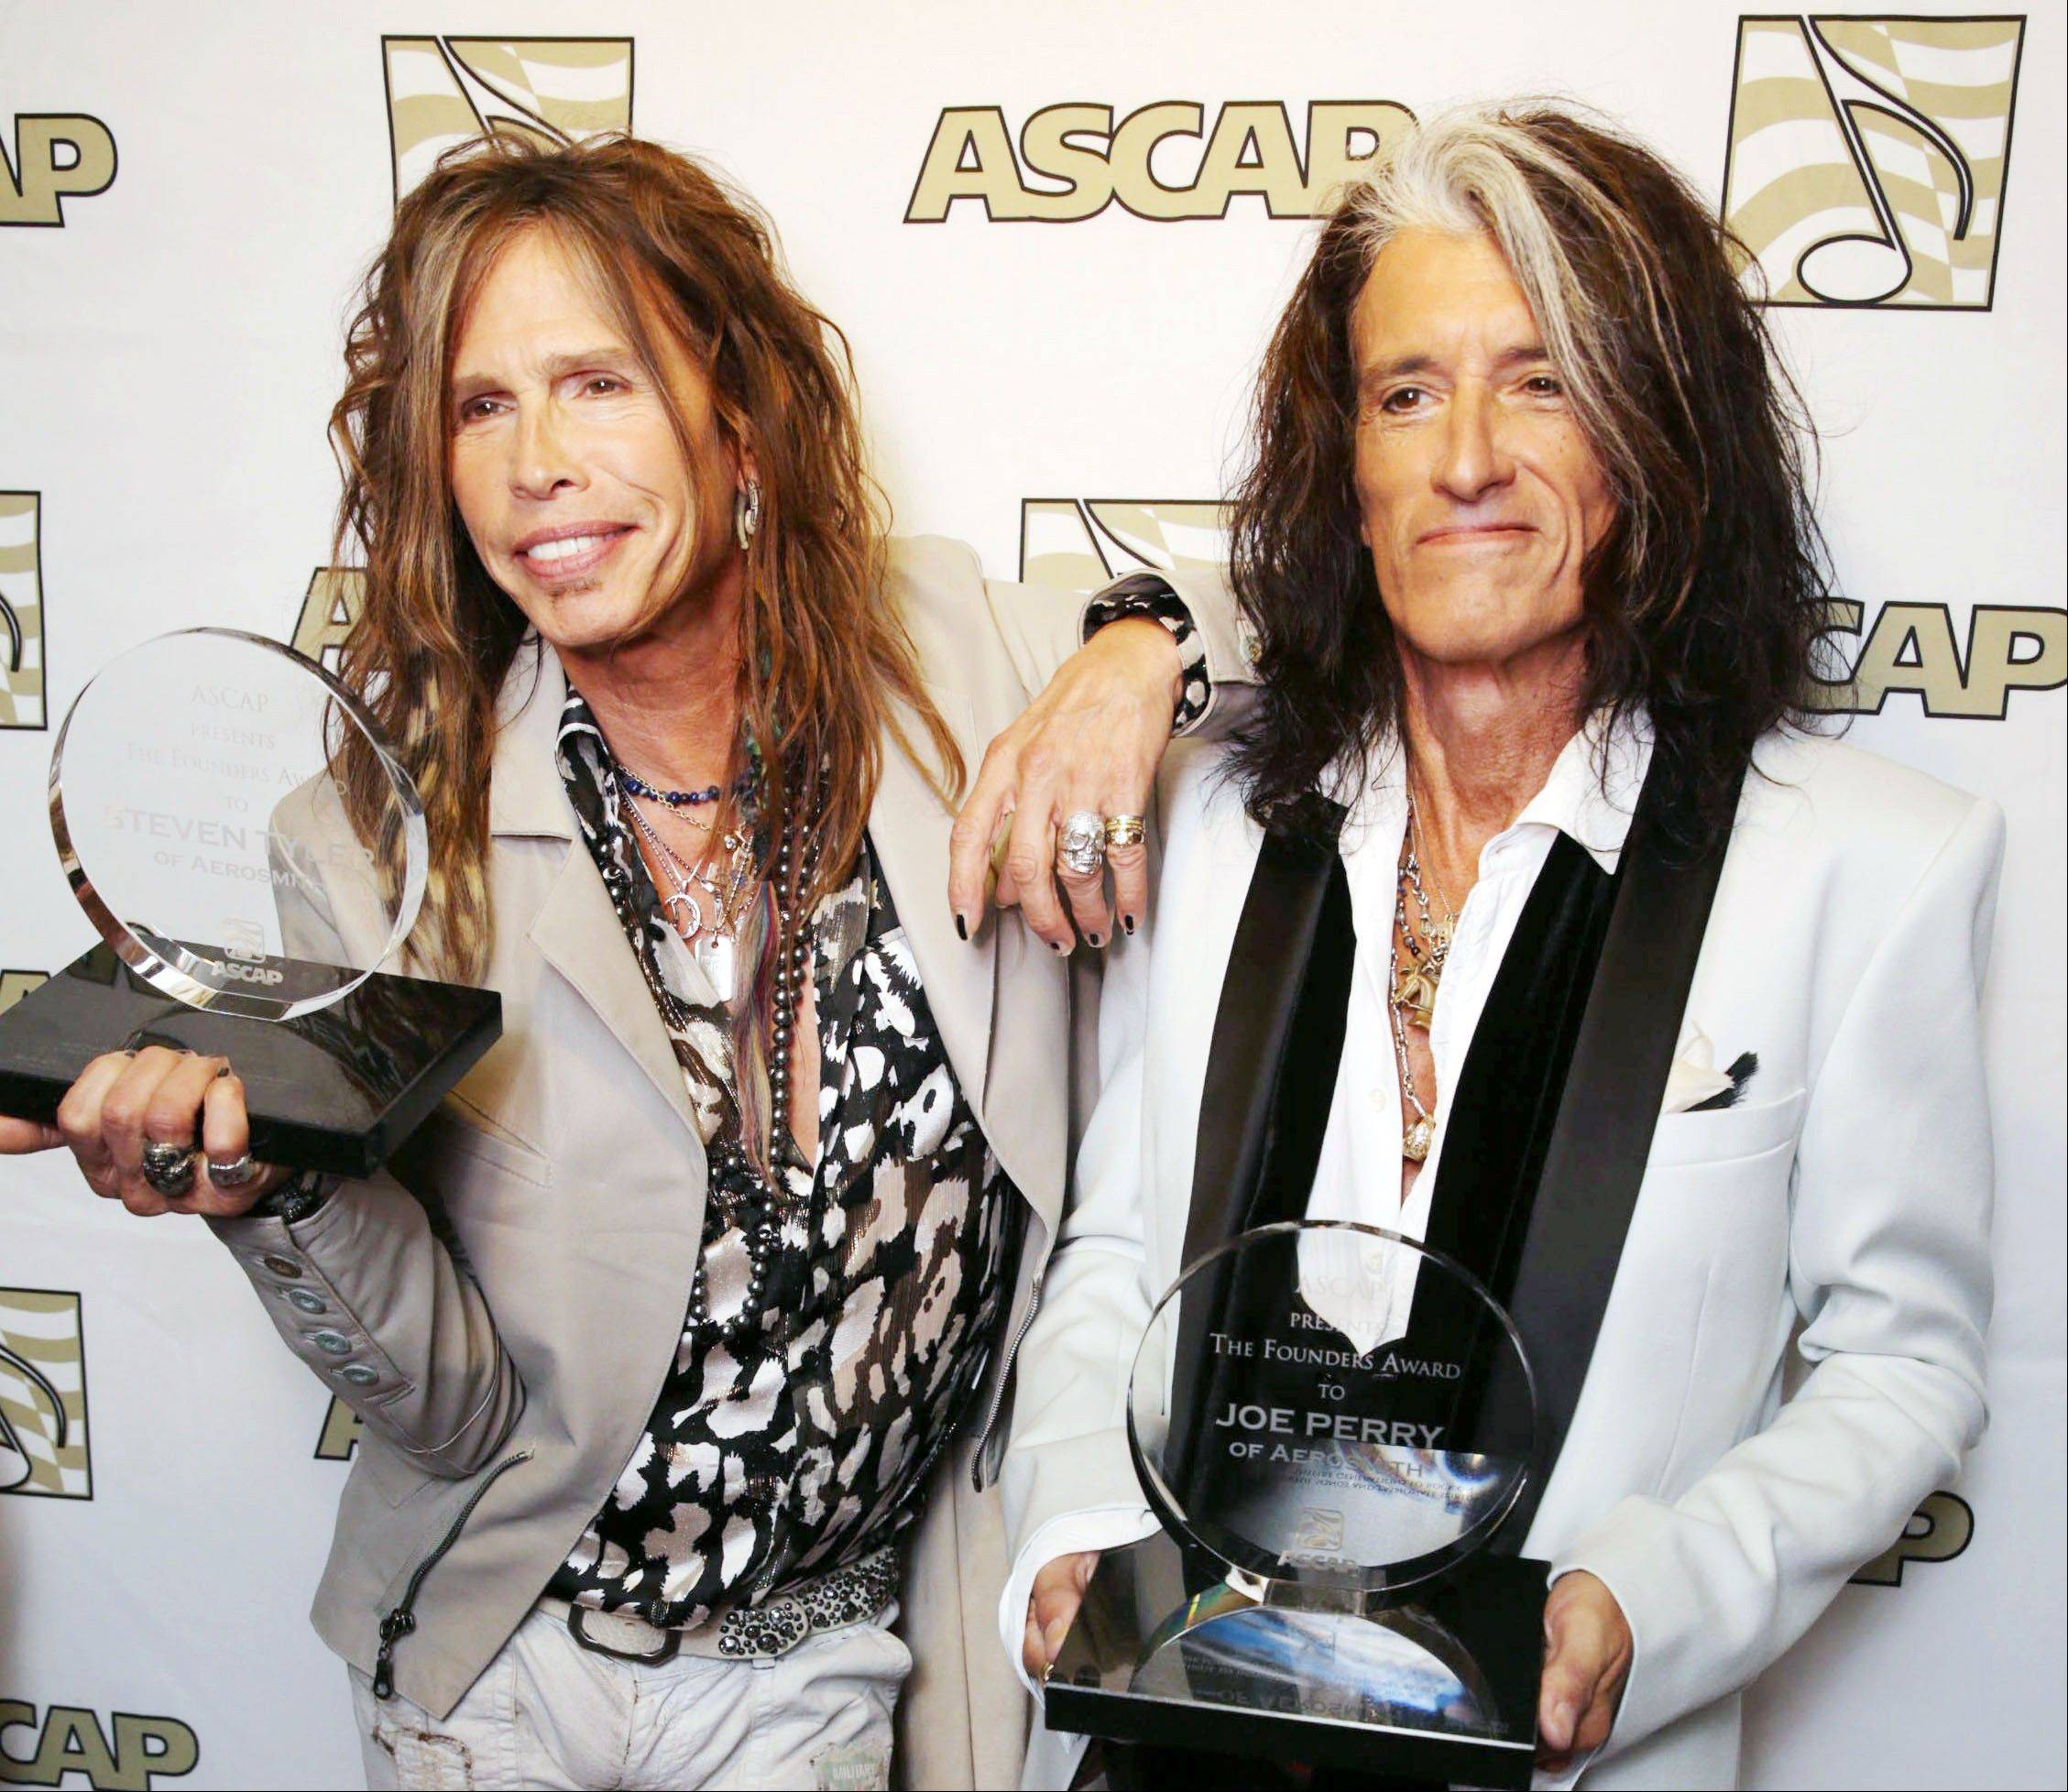 Steven Tyler, left, and Joe Perry, recipients of the ASCAP Founders Award, pose with their awards at the ASCAP Press Conference held at the Sunset Marquis, in Los Angeles. Tyler and Perry will be honored with the ASCAP Founders Award during ASCAP�s 30th annual Pop Music Awards at a gala on April 17 in Los Angeles.